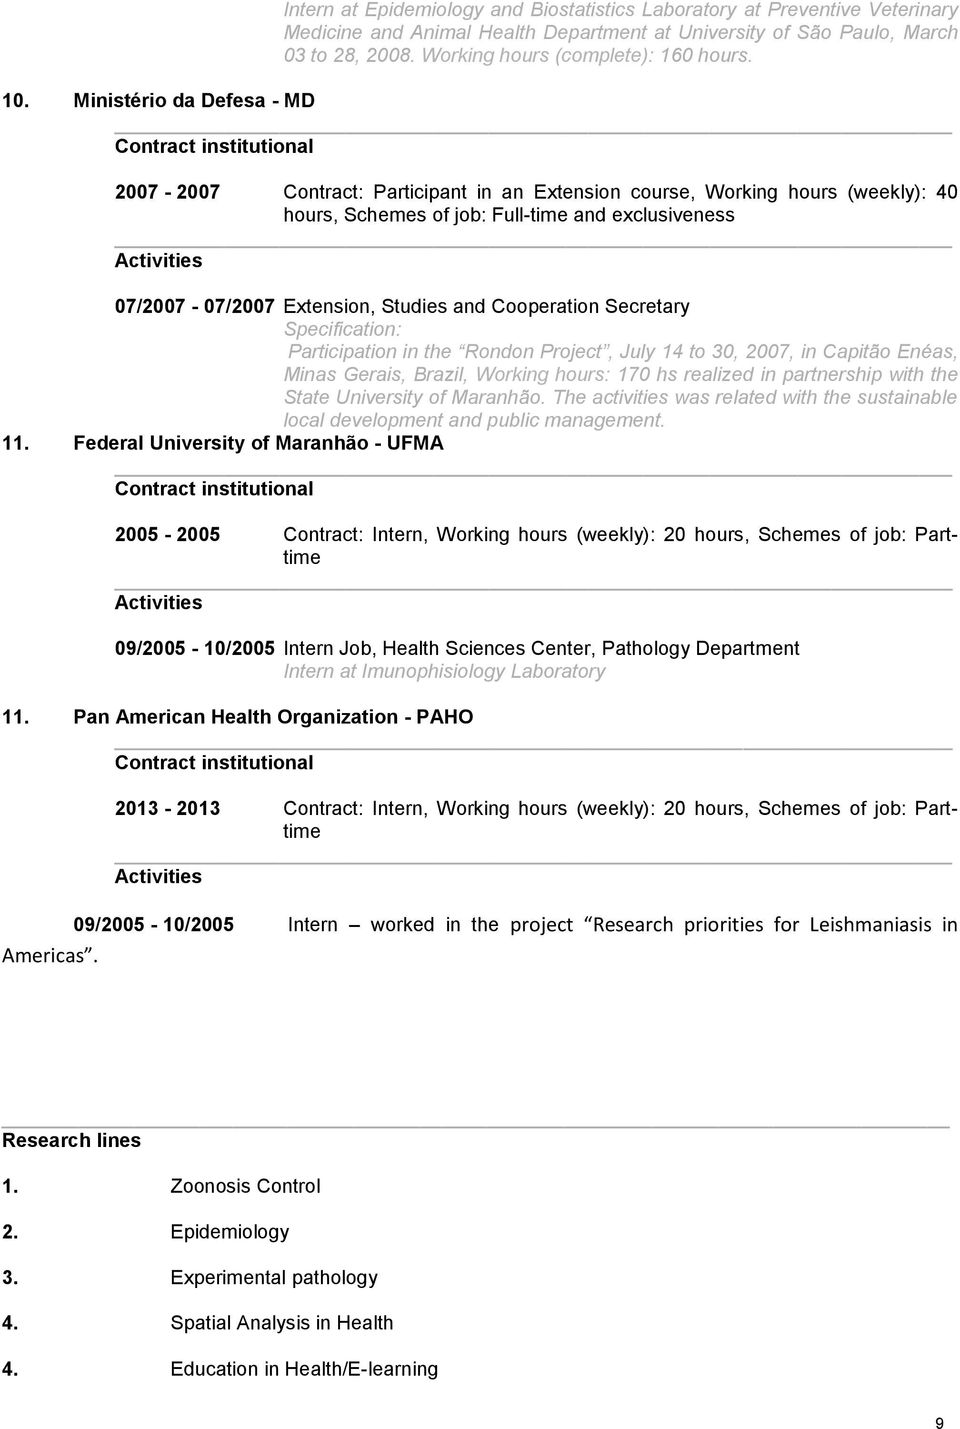 Ministério da Defesa - MD 2007-2007 Contract: Participant in an Extension course, Working hours (weekly): 40 hours, Schemes of job: Full-time and exclusiveness 07/2007-07/2007 Extension, Studies and